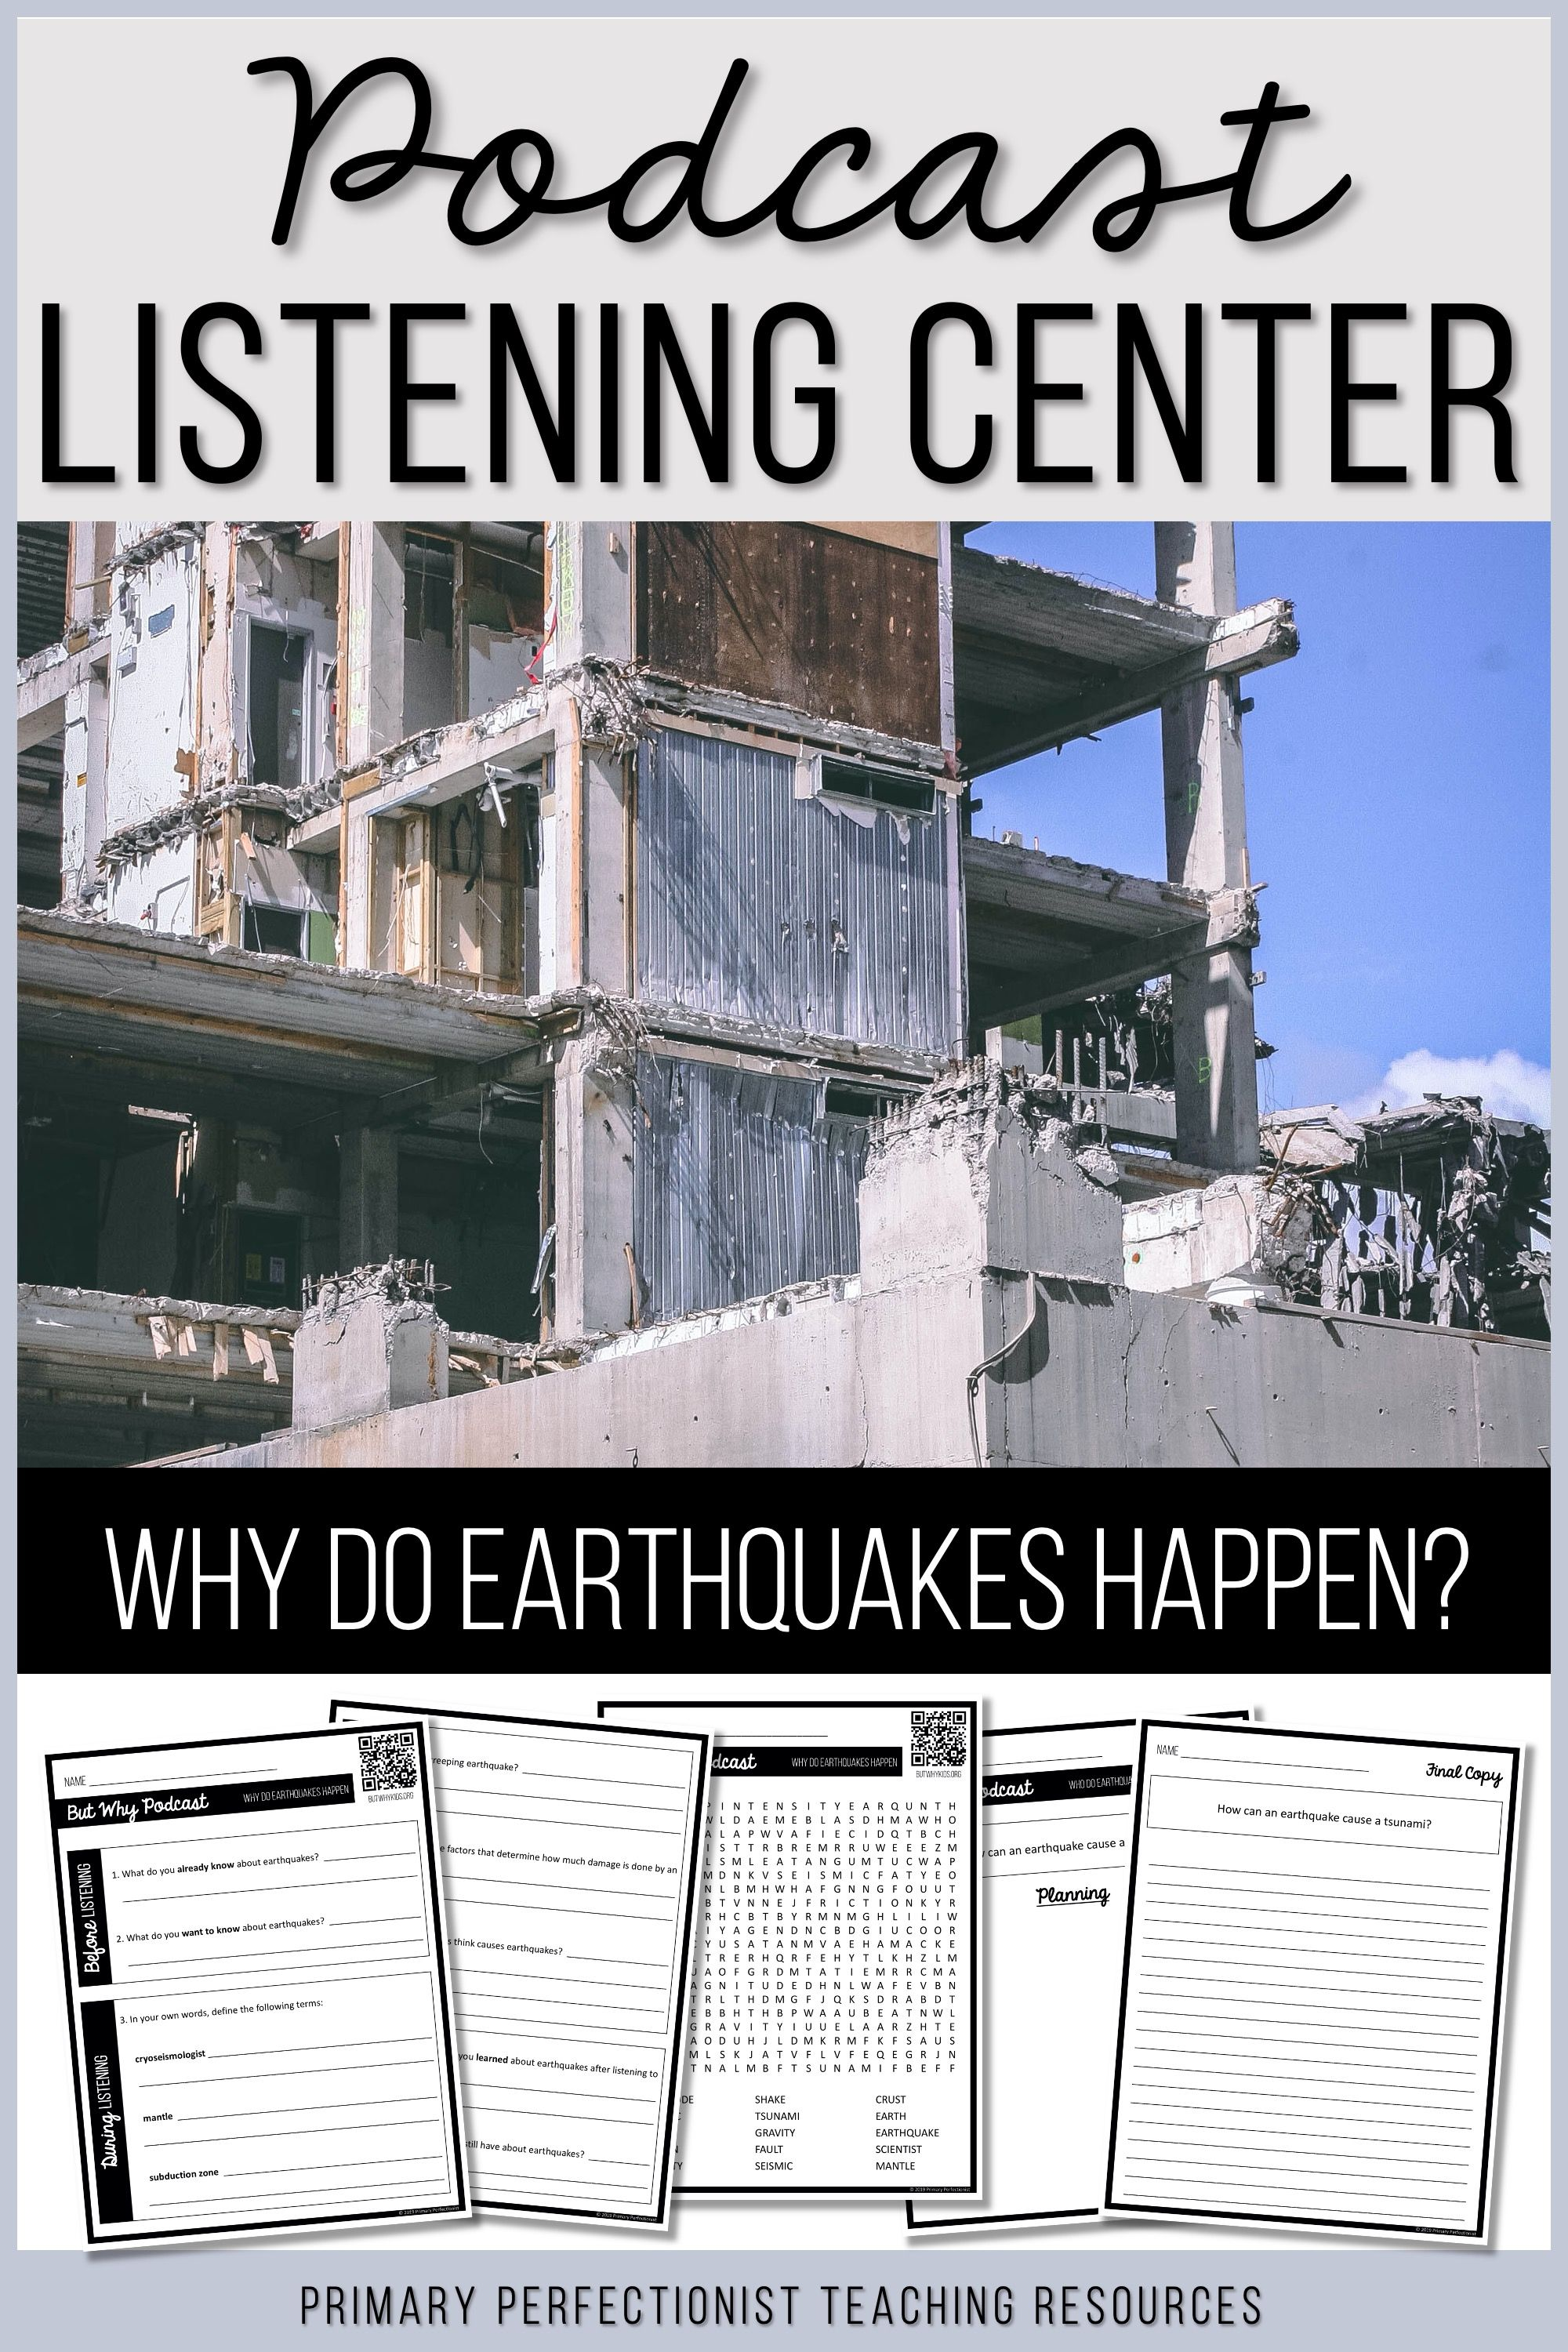 Podcast Listening Center About Earthquakes In